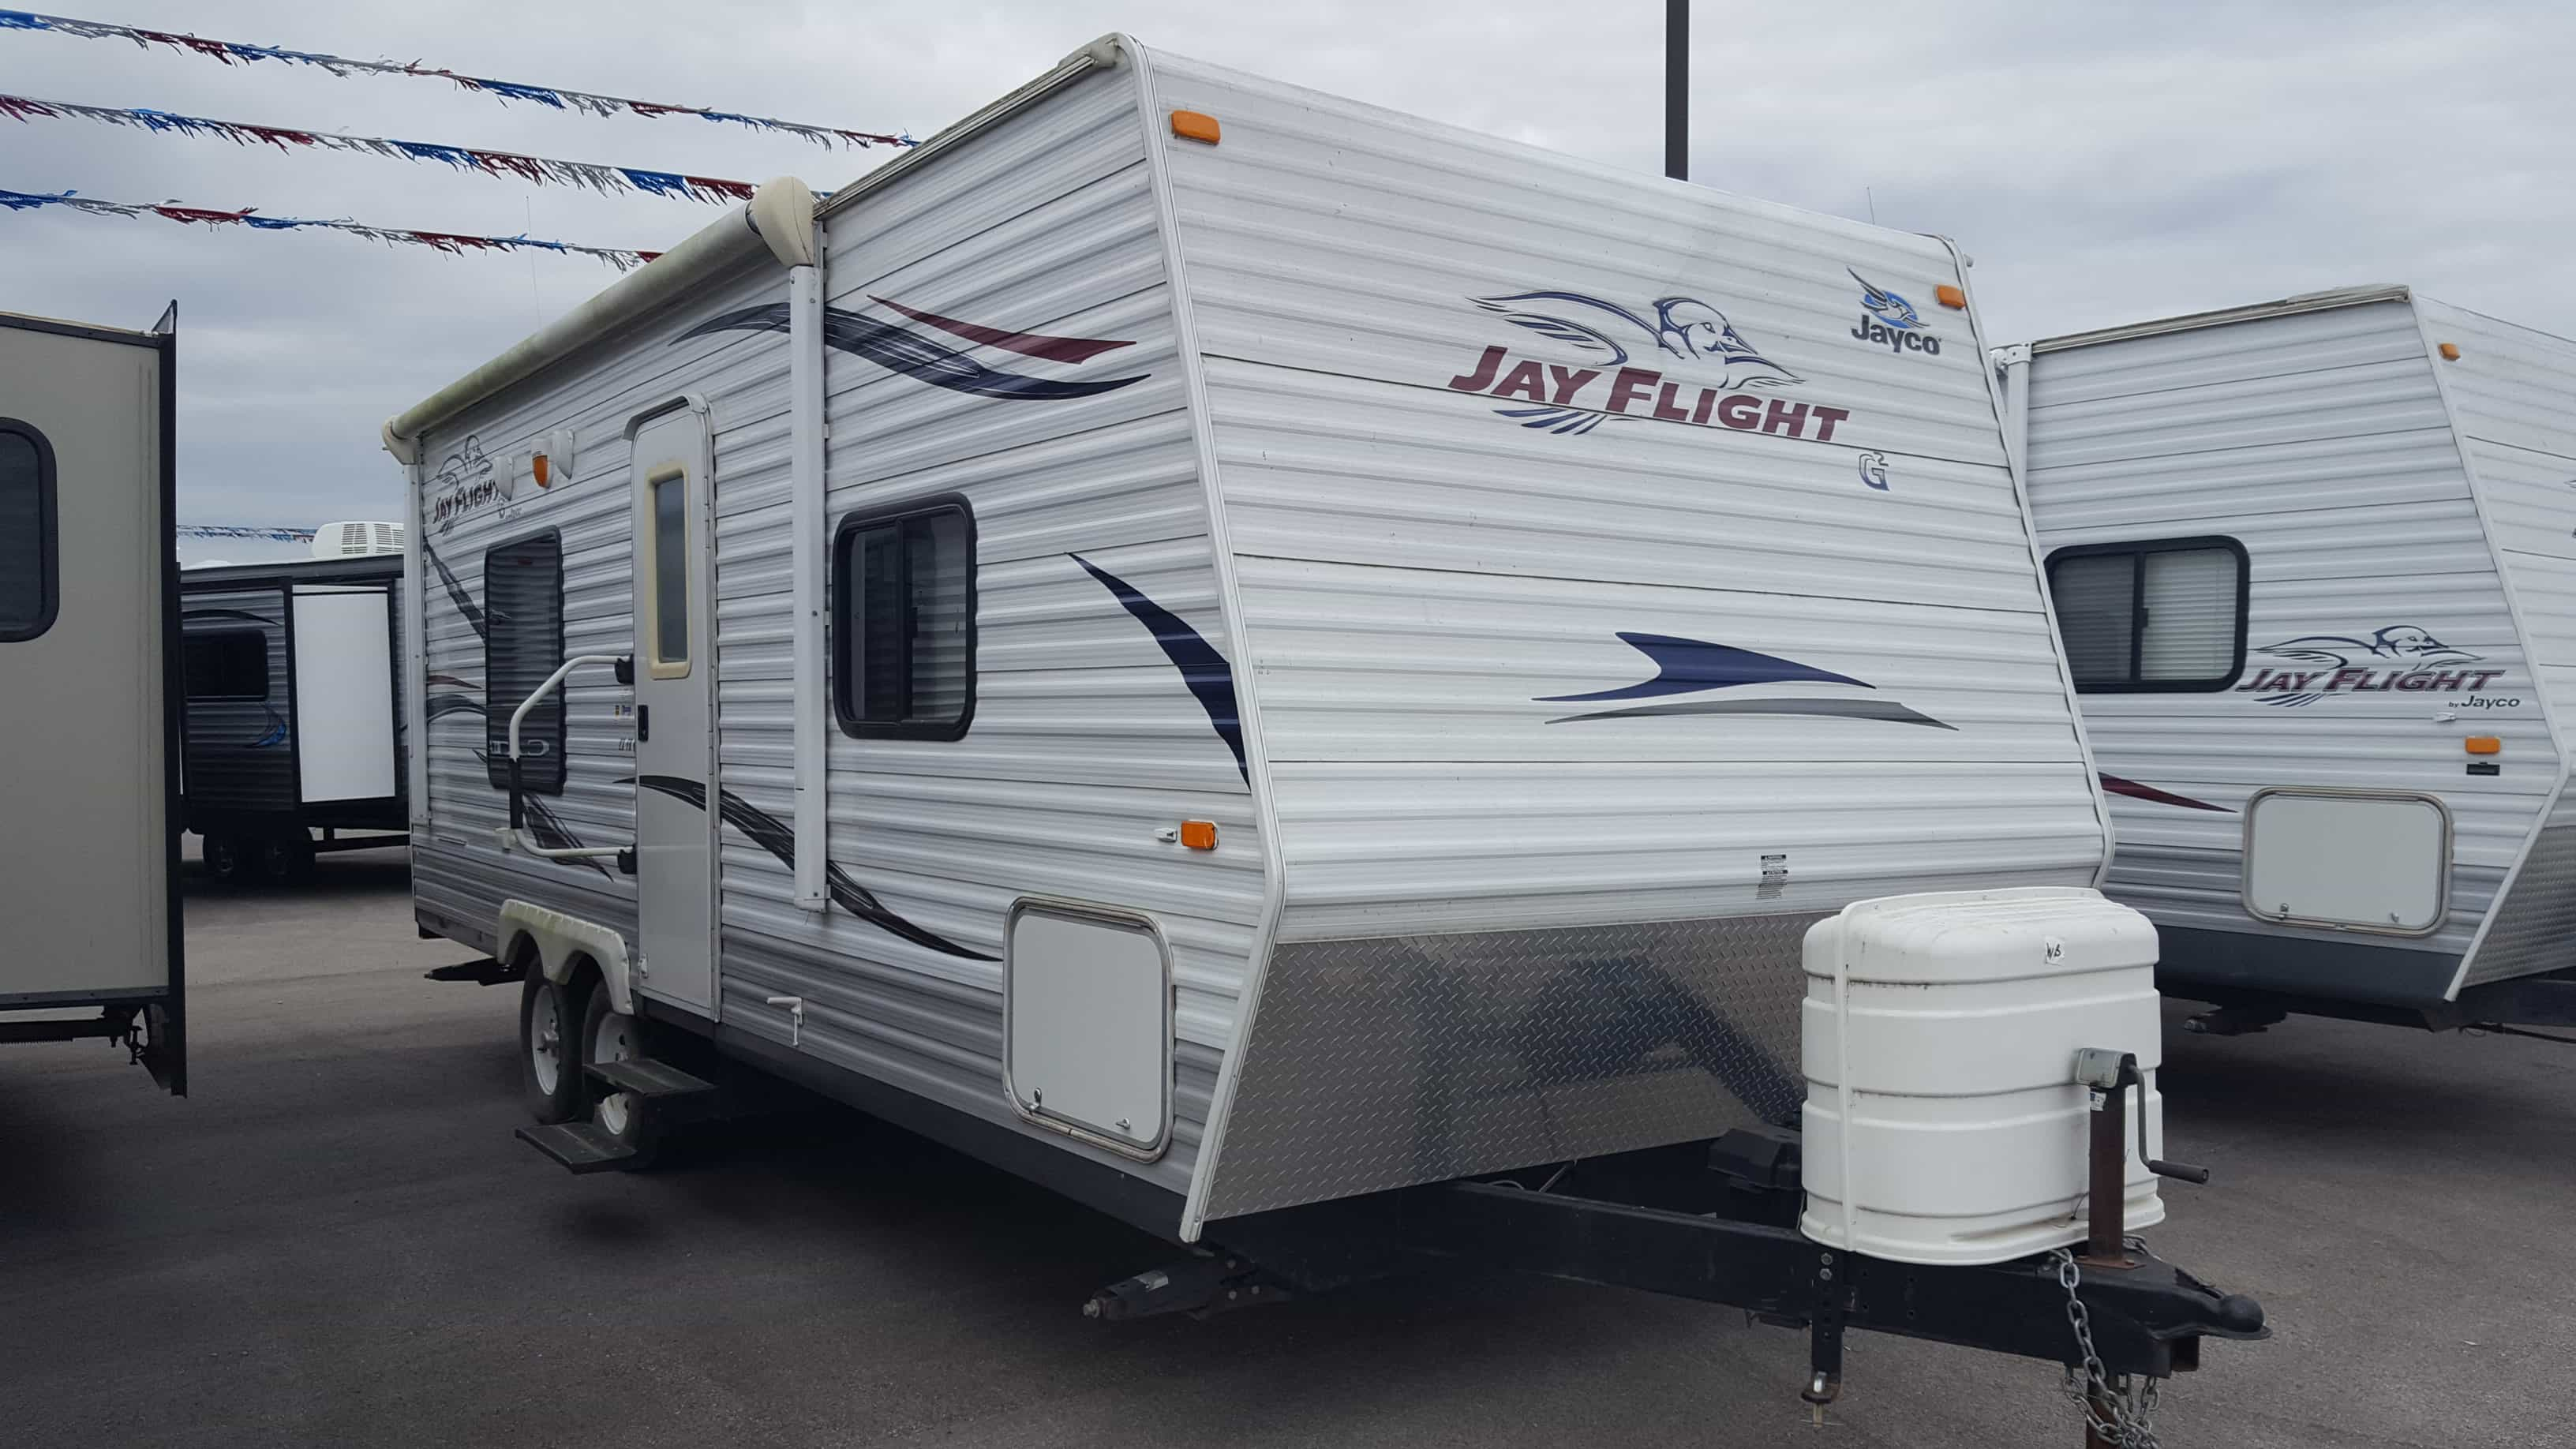 USED 2010 Jayco JAY FLIGHT G2 23FB - American RV